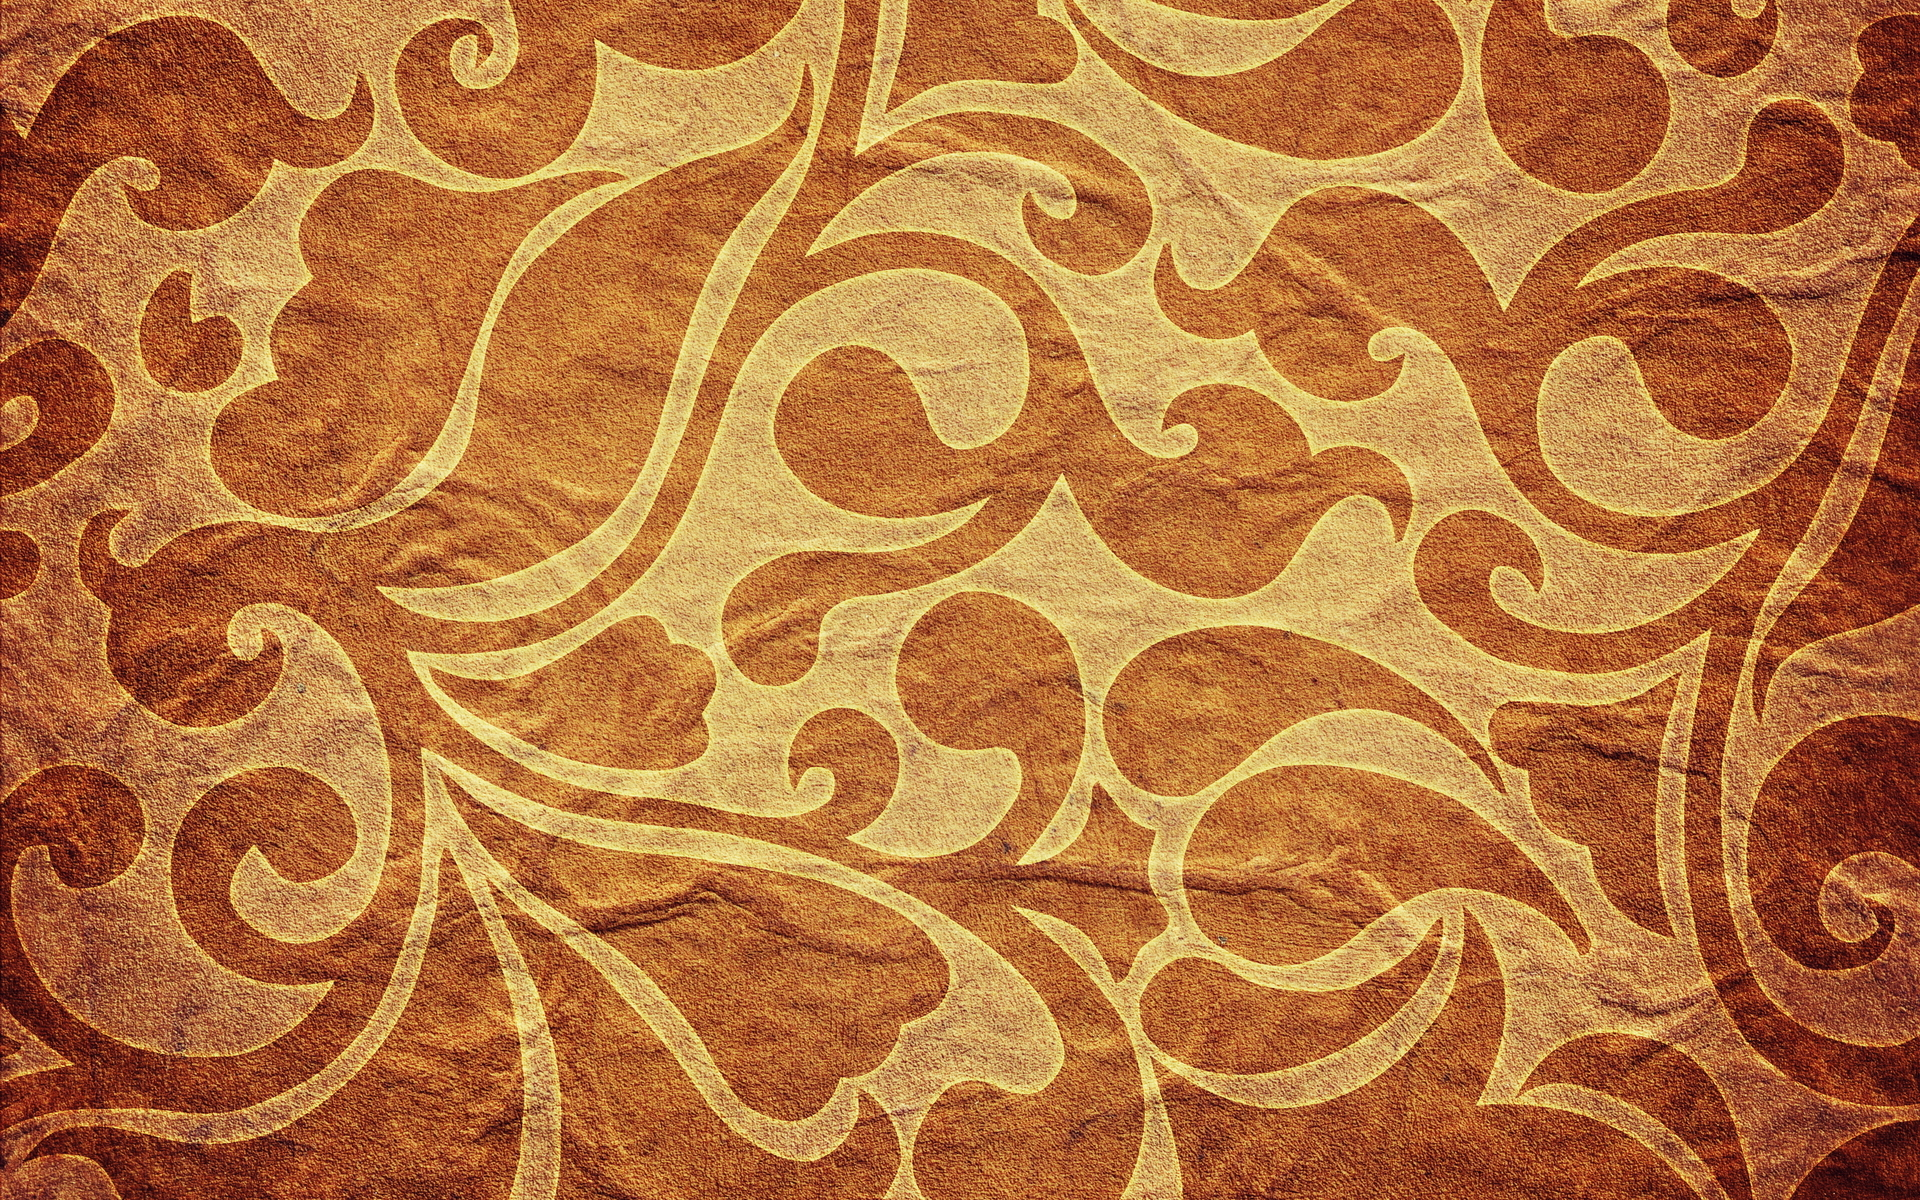 background pattern brown yellow gold drops petals wallpaper 1920x1200